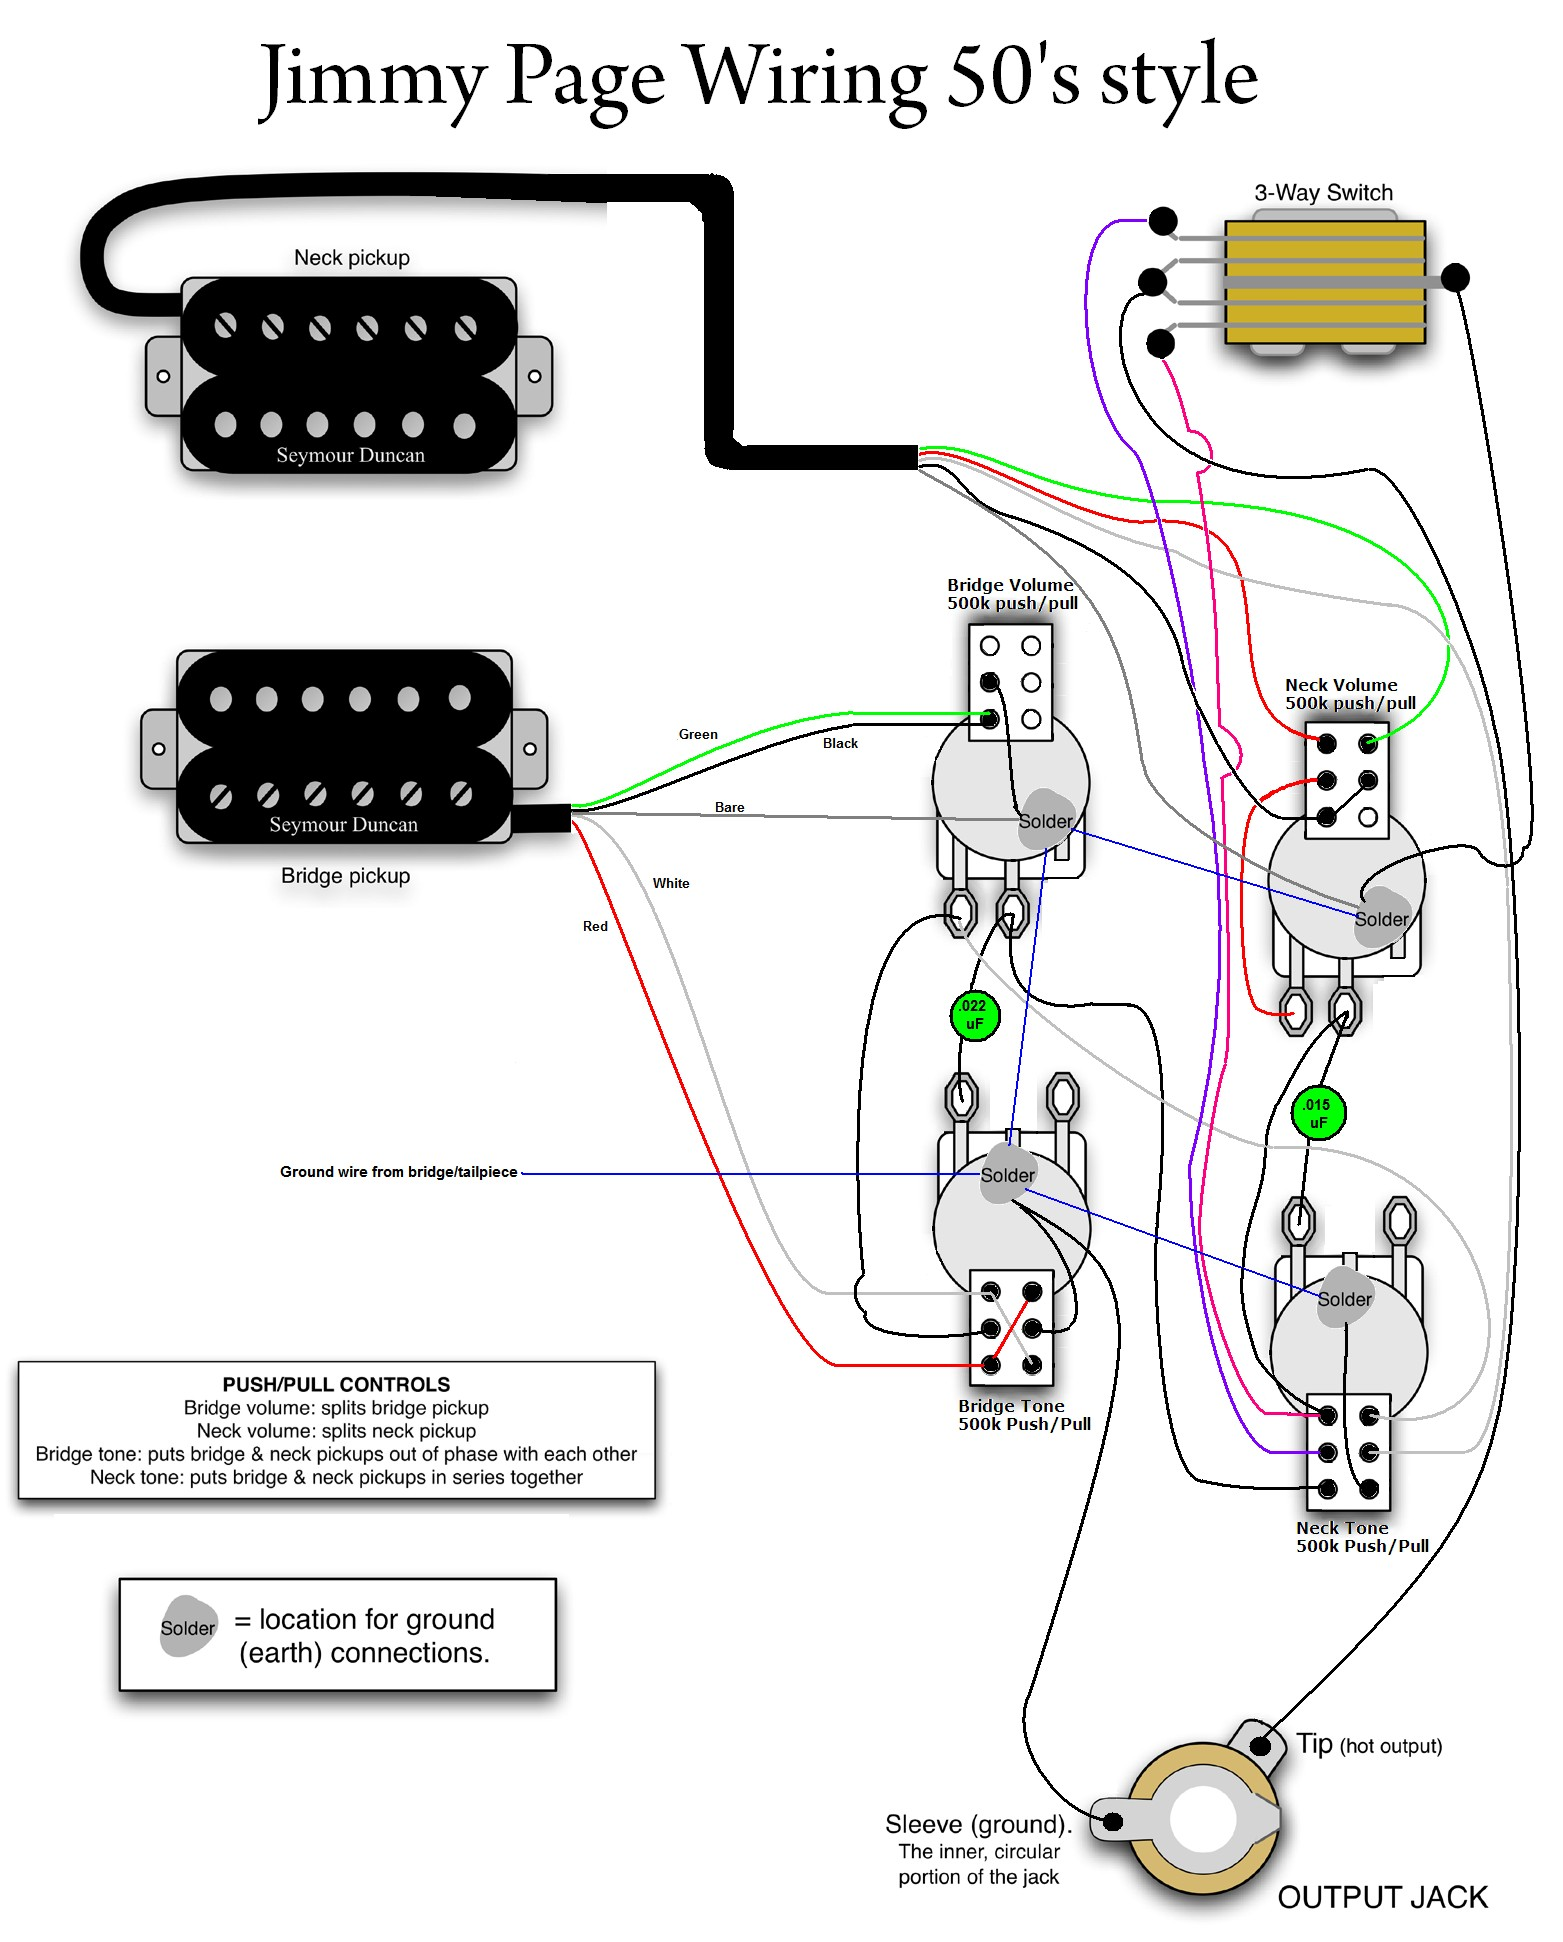 50s Les Paul Wiring Diagram Jimmy Page Wiring … Just Jimmy Pinterest Of 50s Les Paul Wiring Diagram